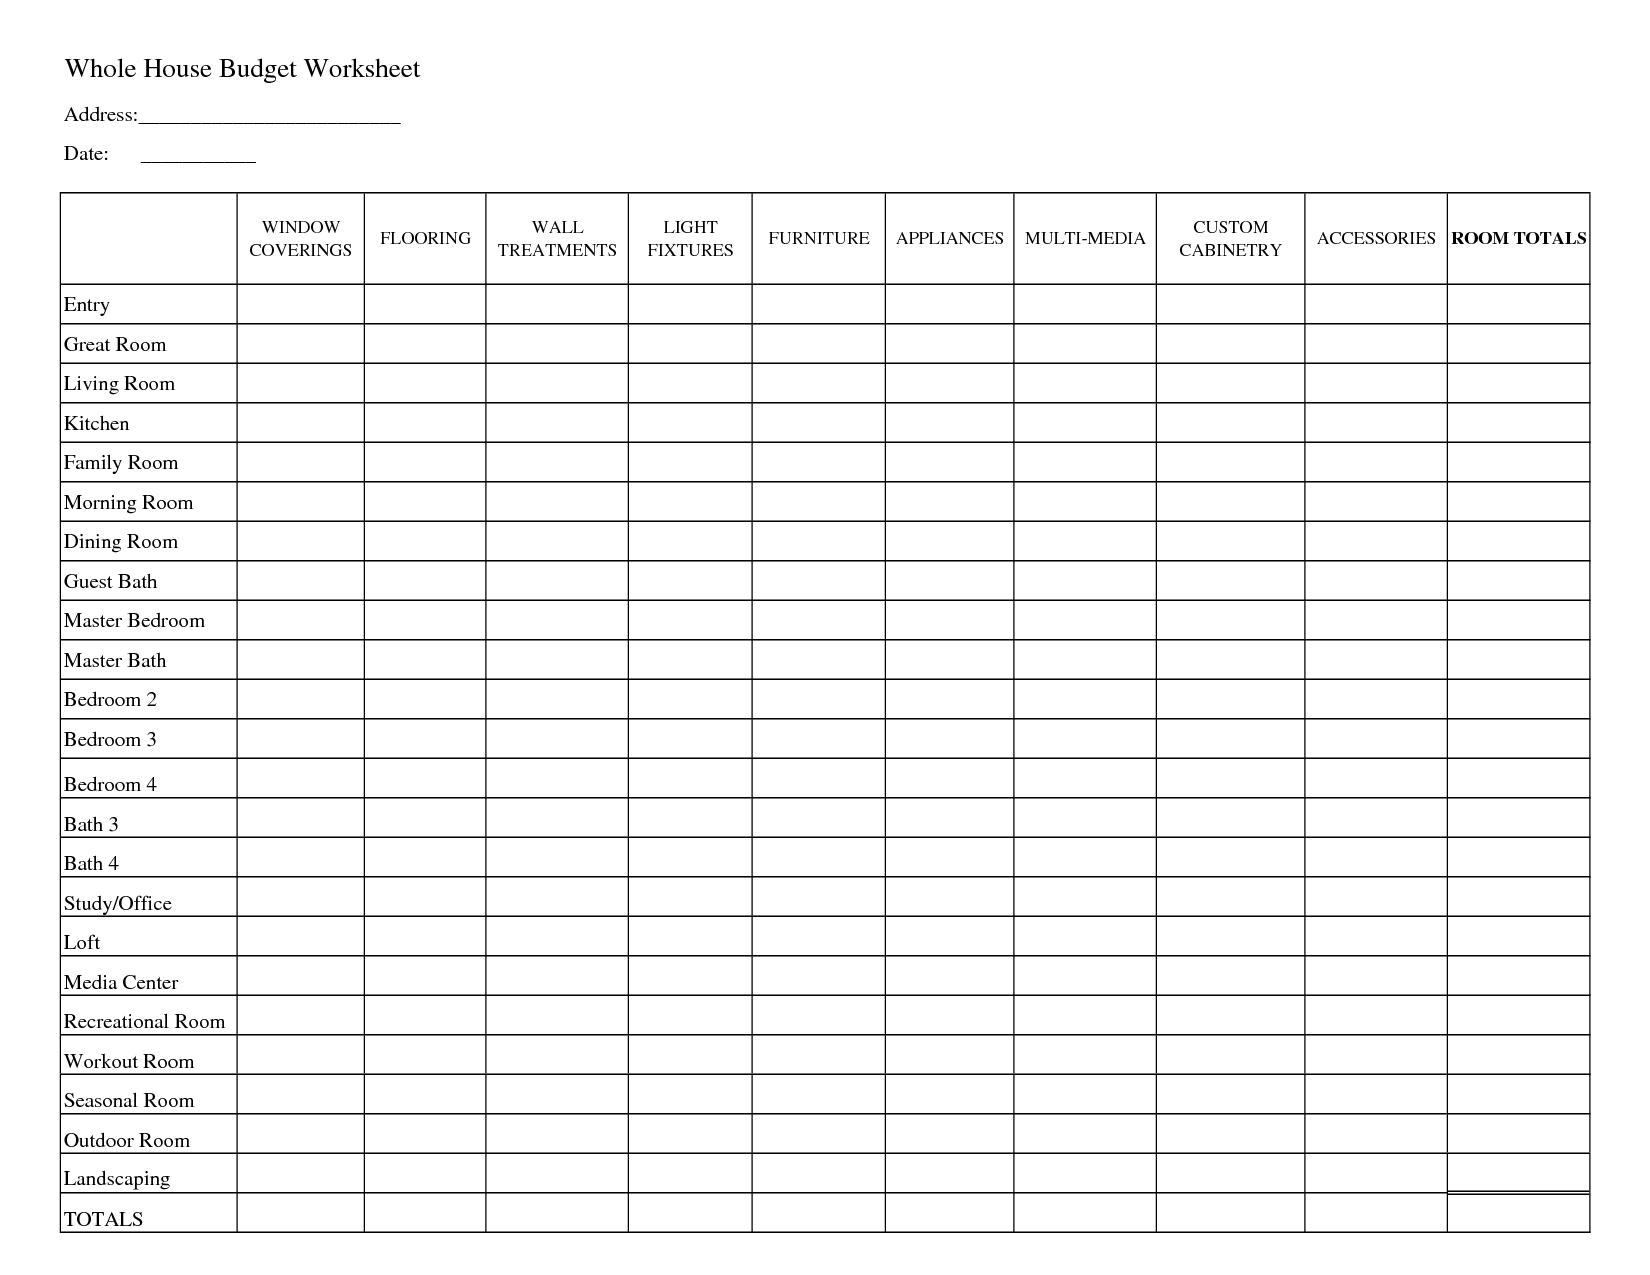 Worksheets Blank Budget Worksheet printable household budget worksheets whole house worksheet